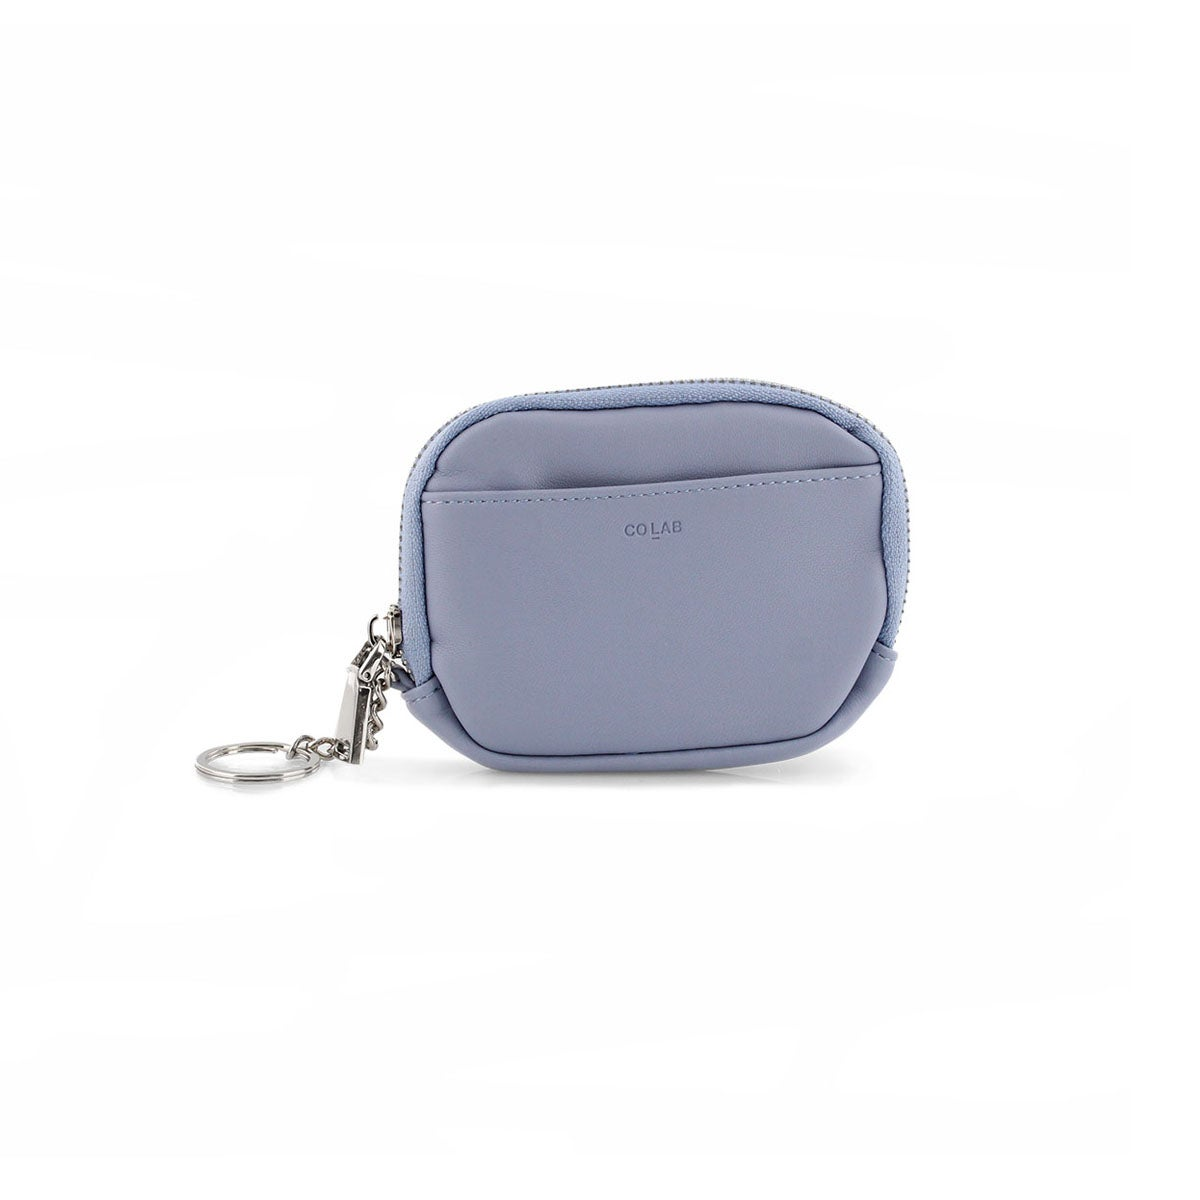 Lds lilac zip up wallet